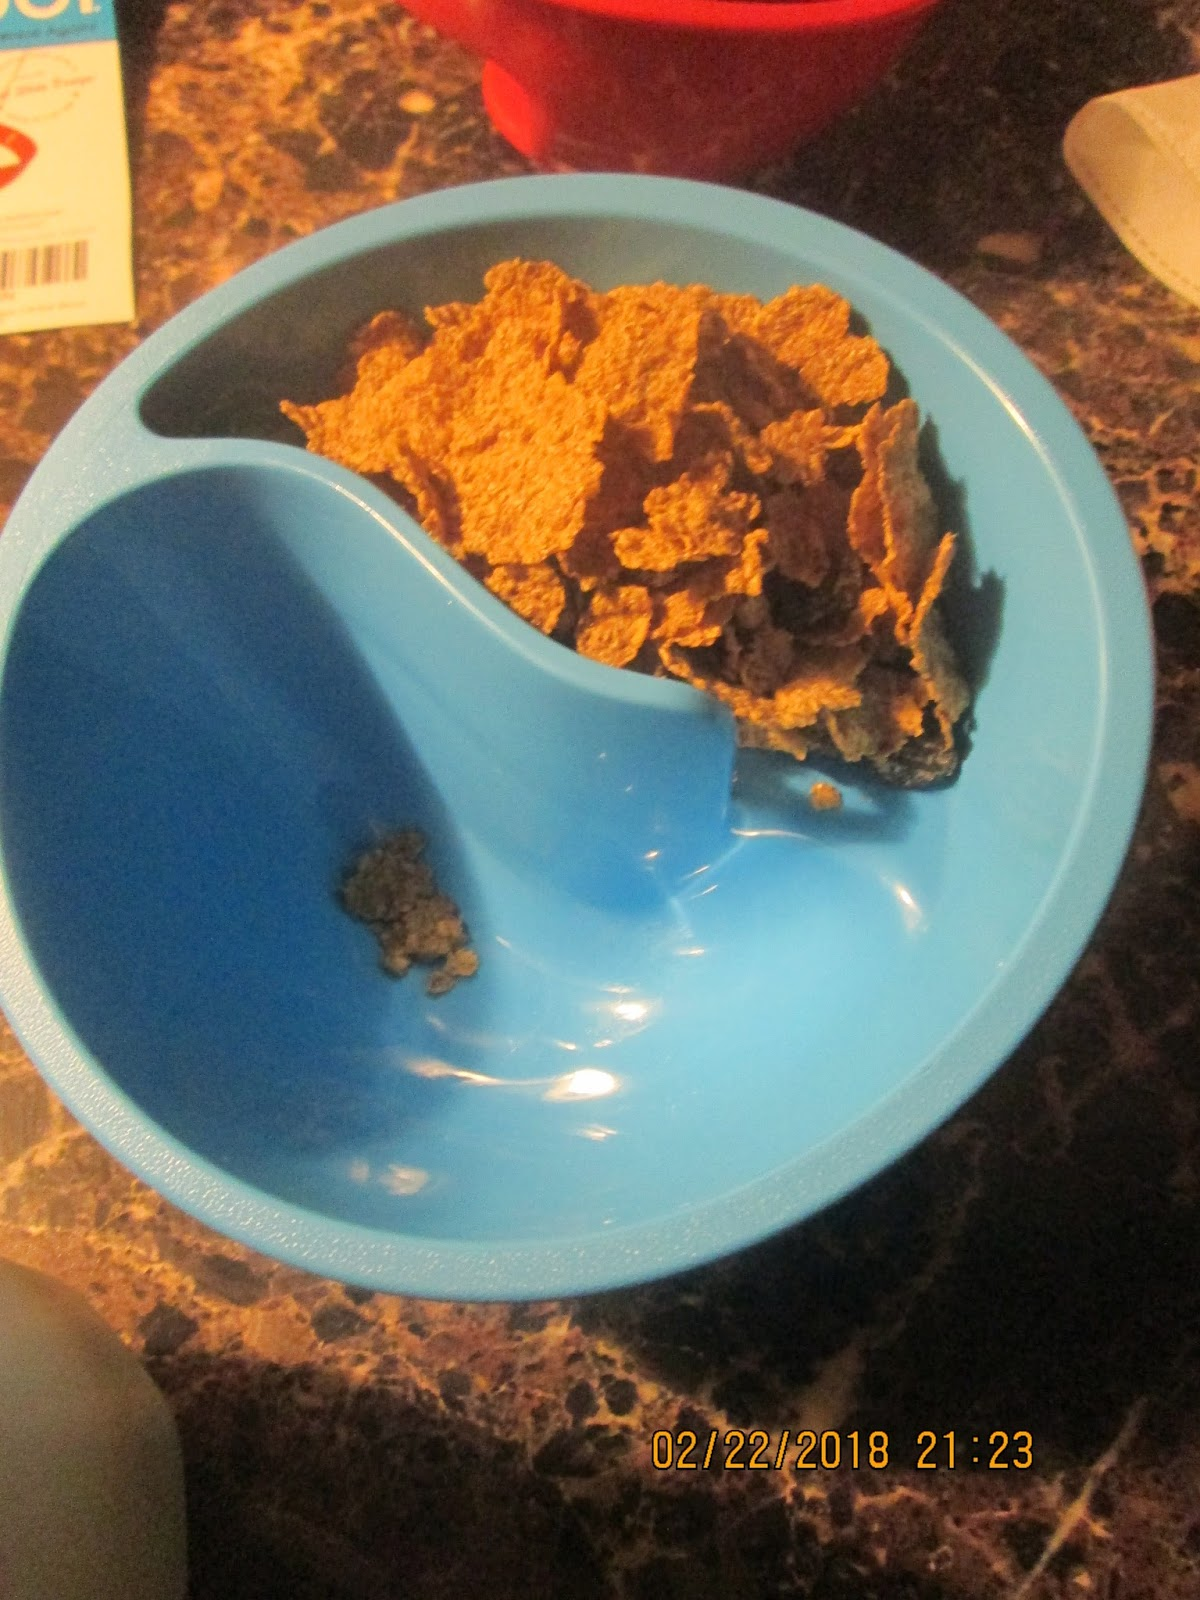 Little helpers in life obol review i chose to try my obol out with raisin bran because lets be honest here the bran gets soggy so fast though you can put some in the milk compartment ccuart Choice Image